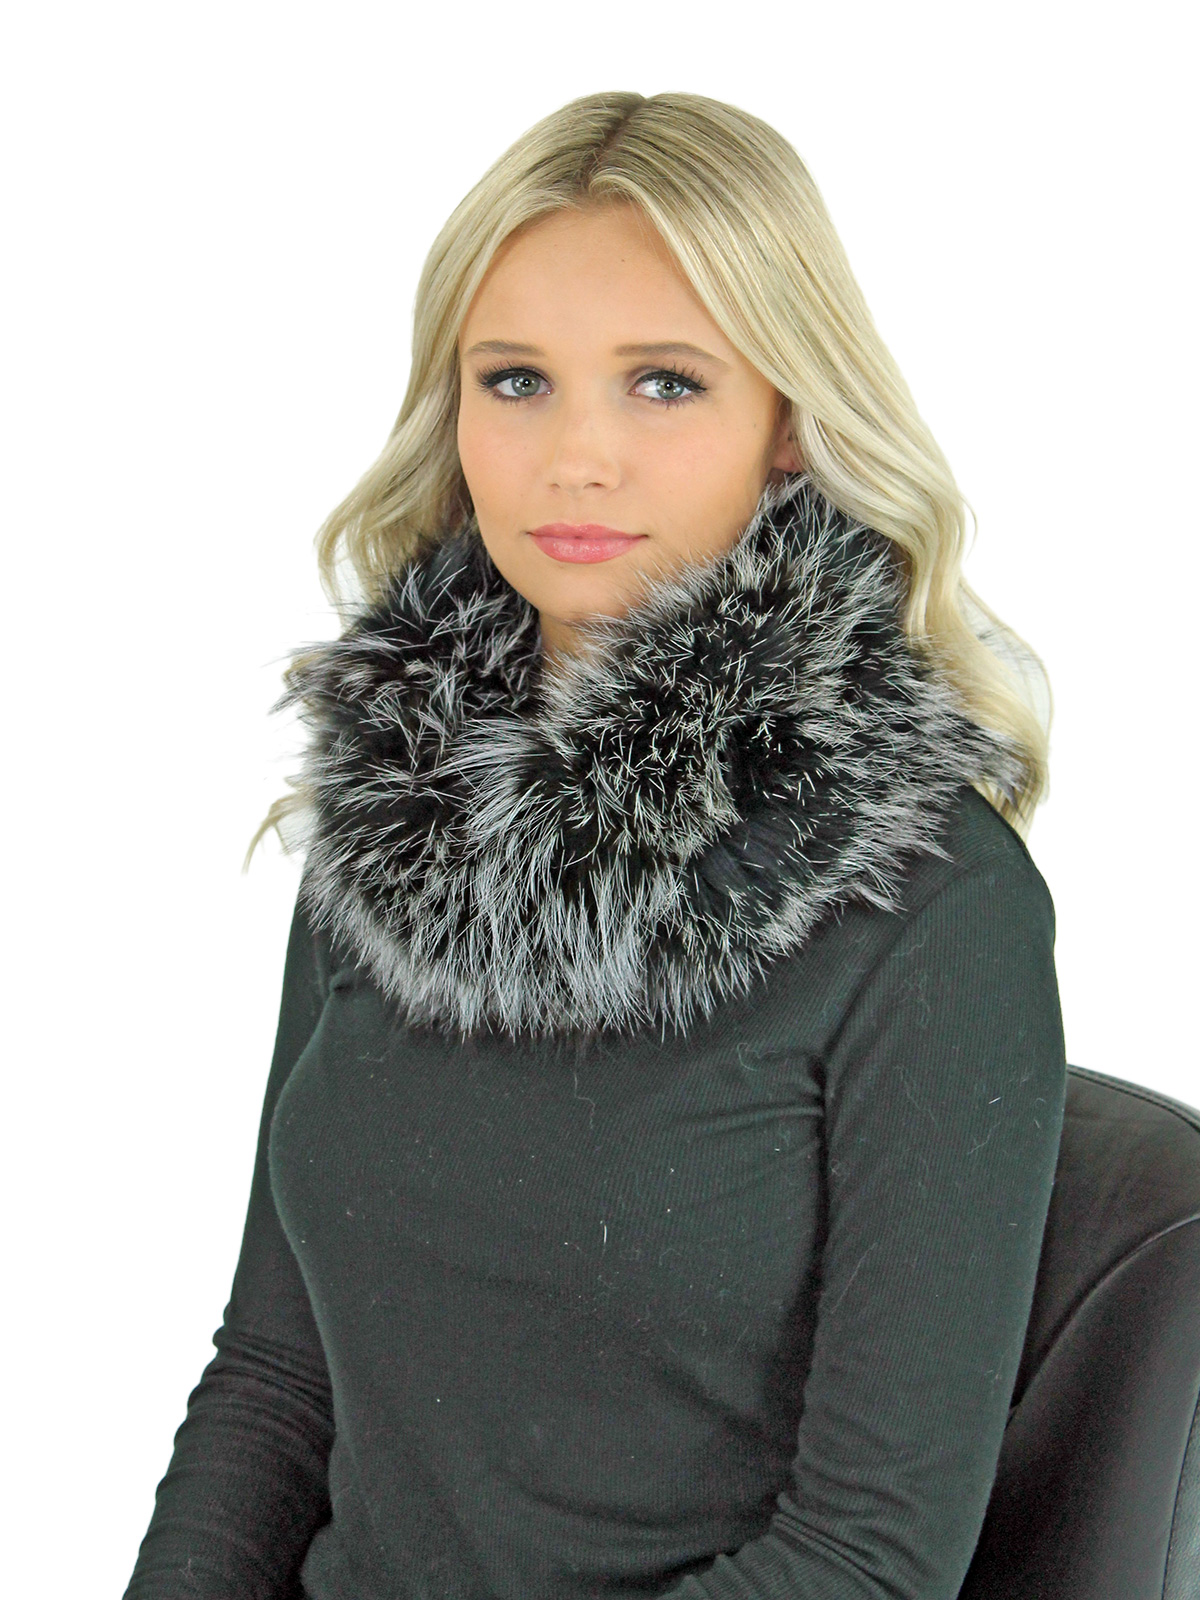 Women's Natural Silver Fox Fur Cowl Neck Scarf